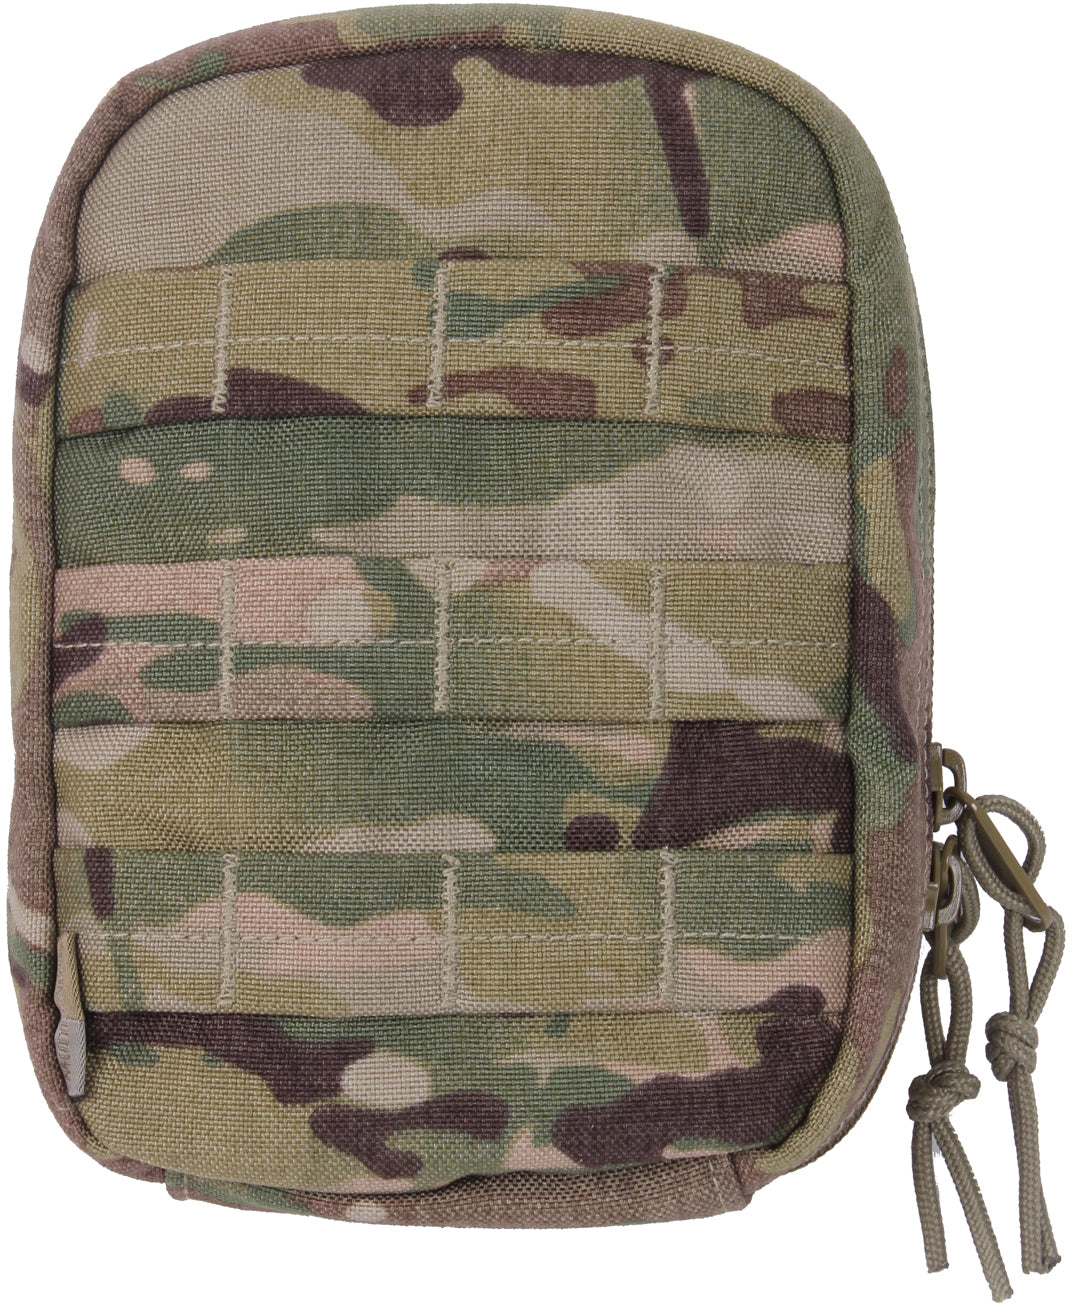 Multi Cam - Military MOLLE Tactical First Aid Kit Pouch & First Aid Supplies